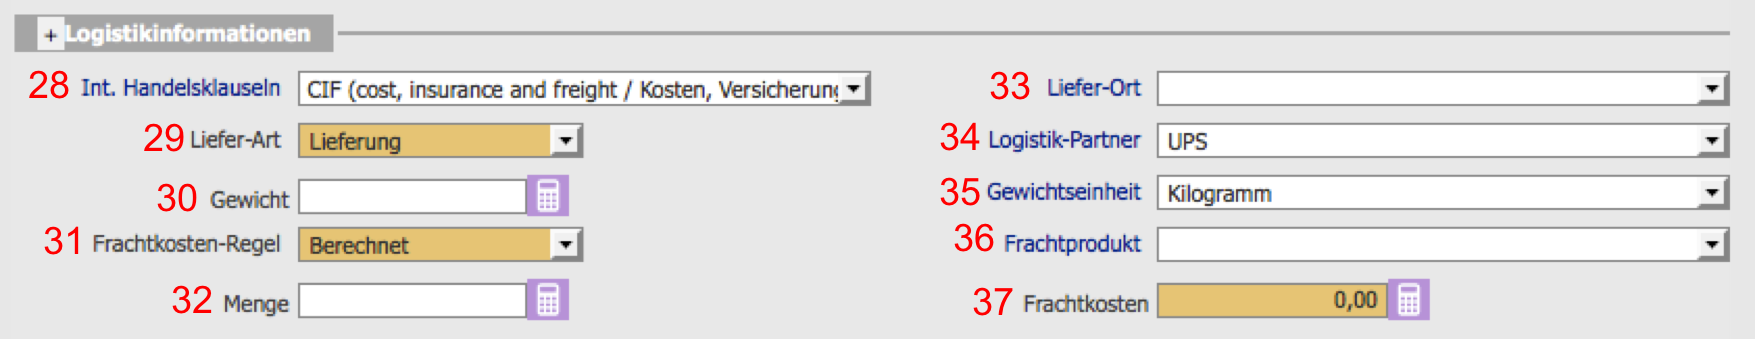 Logistikinformationen